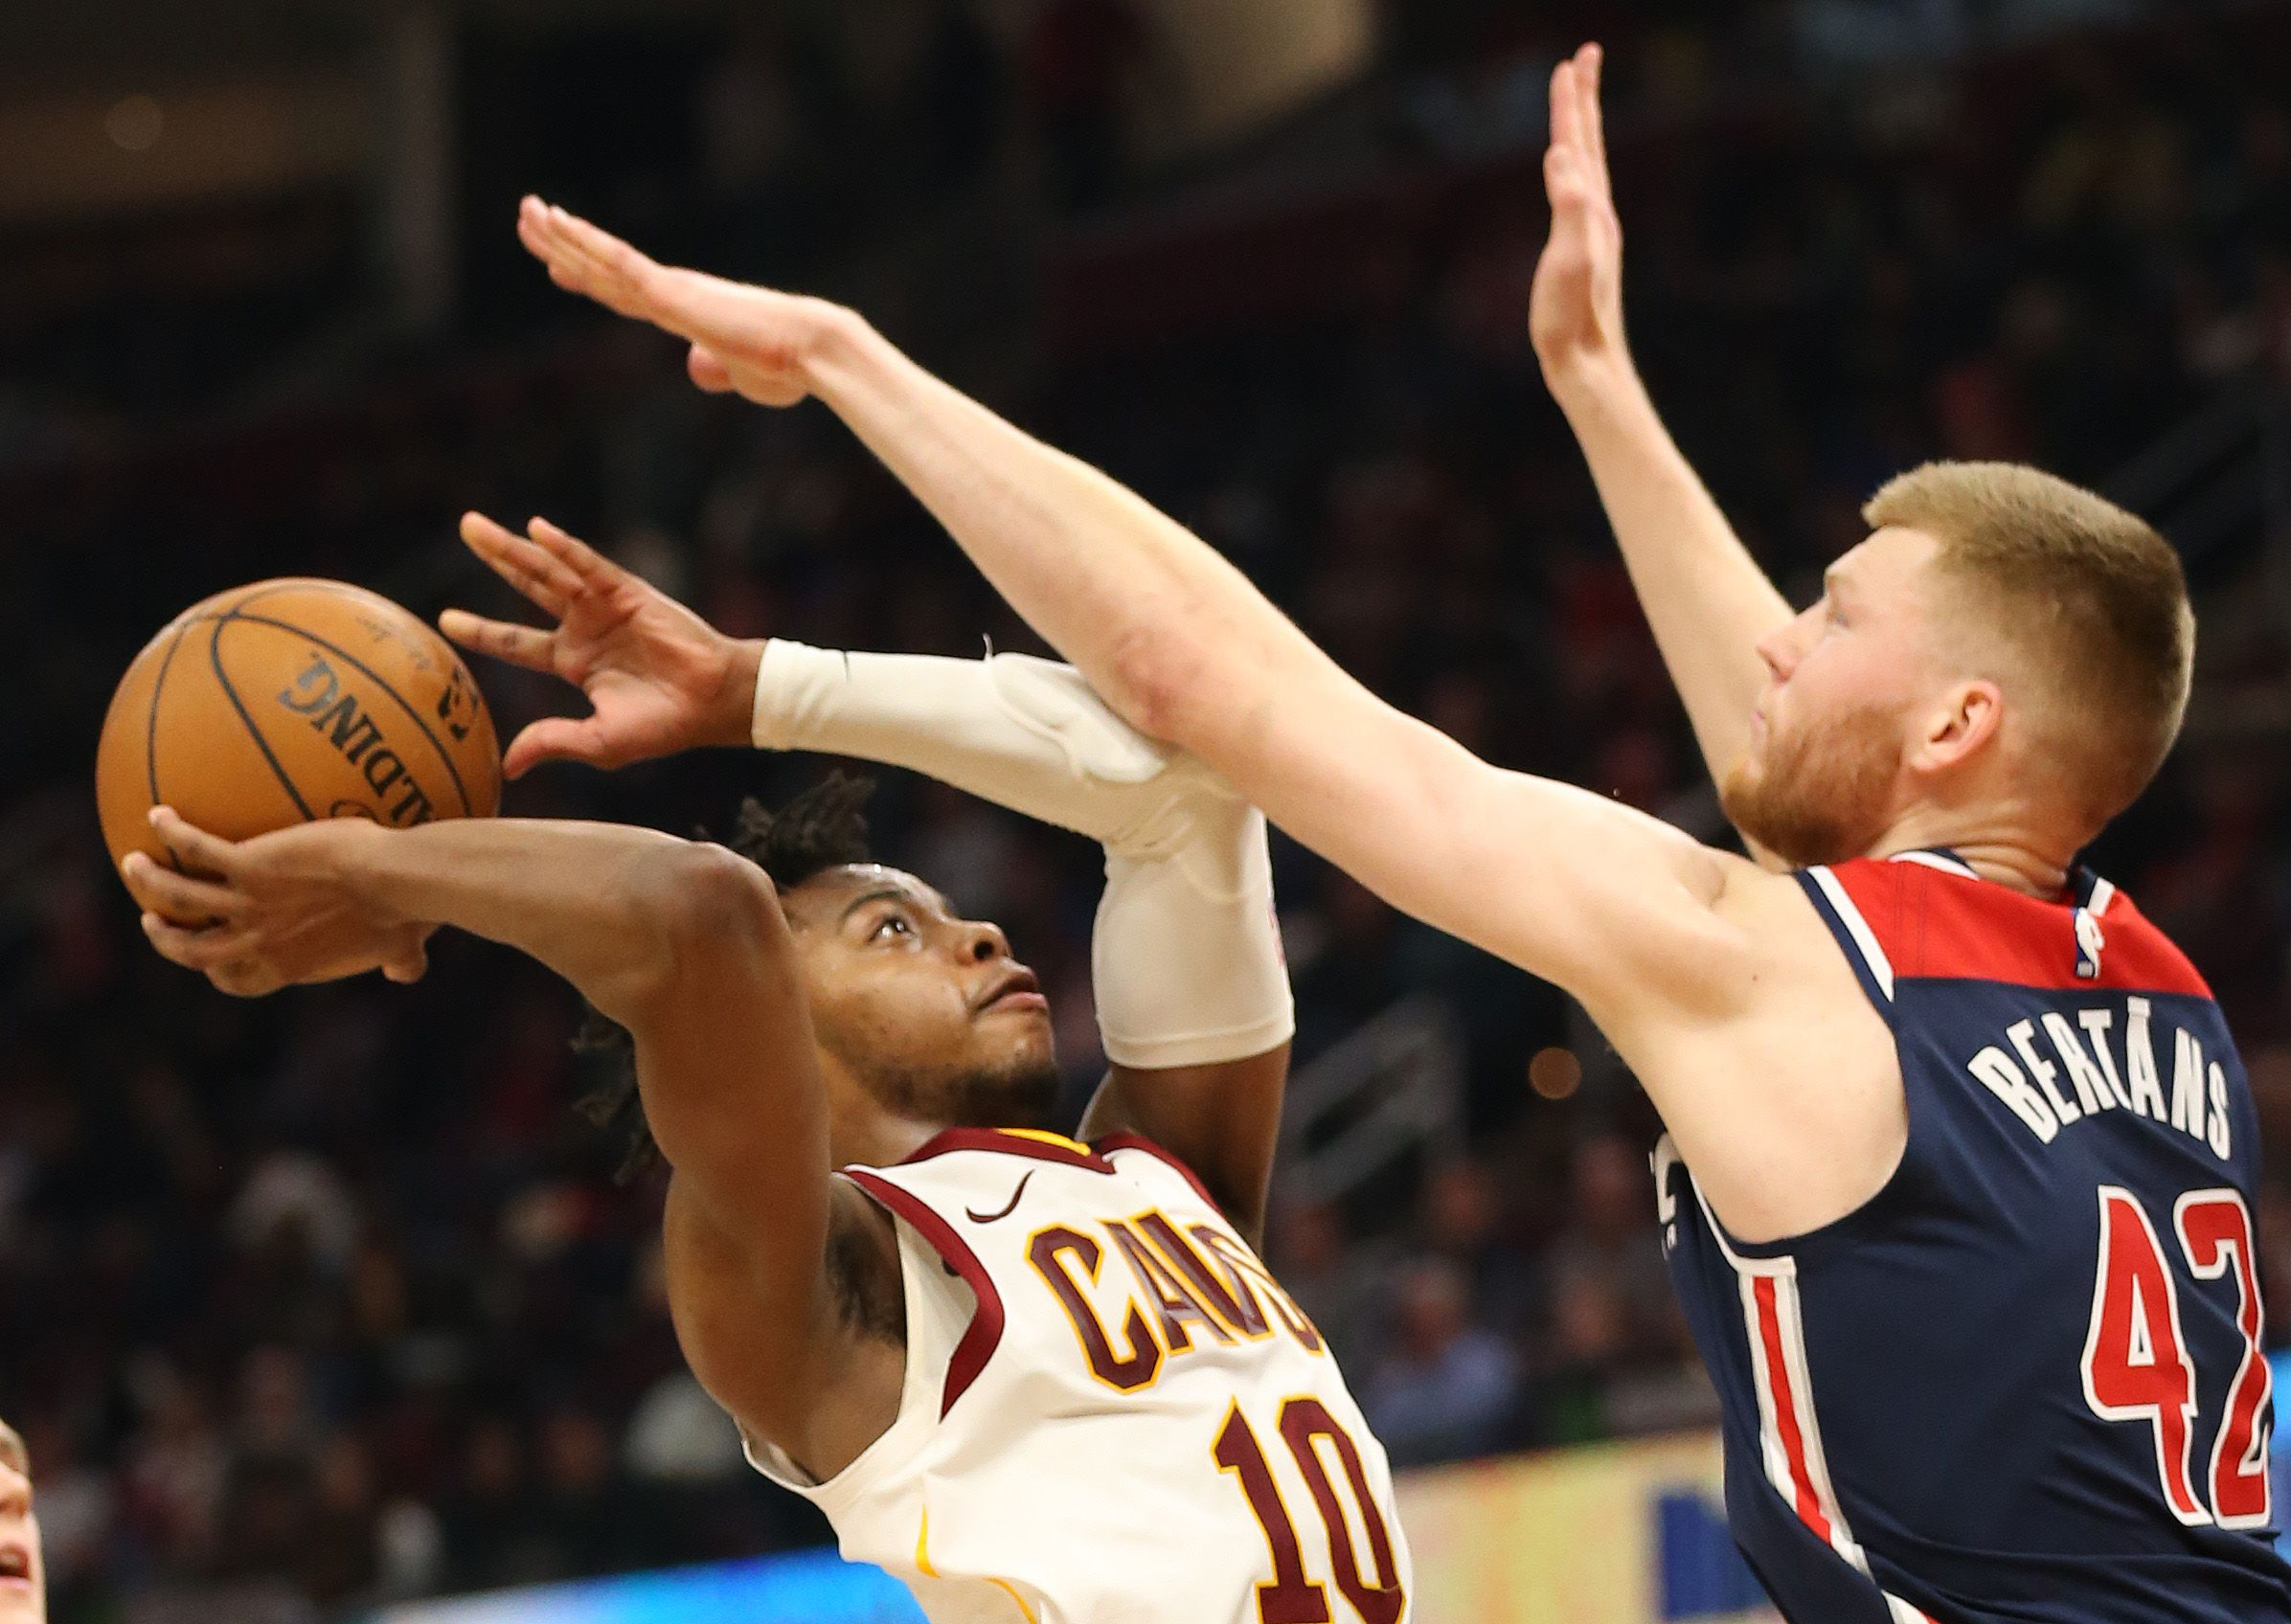 Nba Draft 2020 Washington Wizards Team Needs And How It Might Affect The Cavaliers Cleveland Com